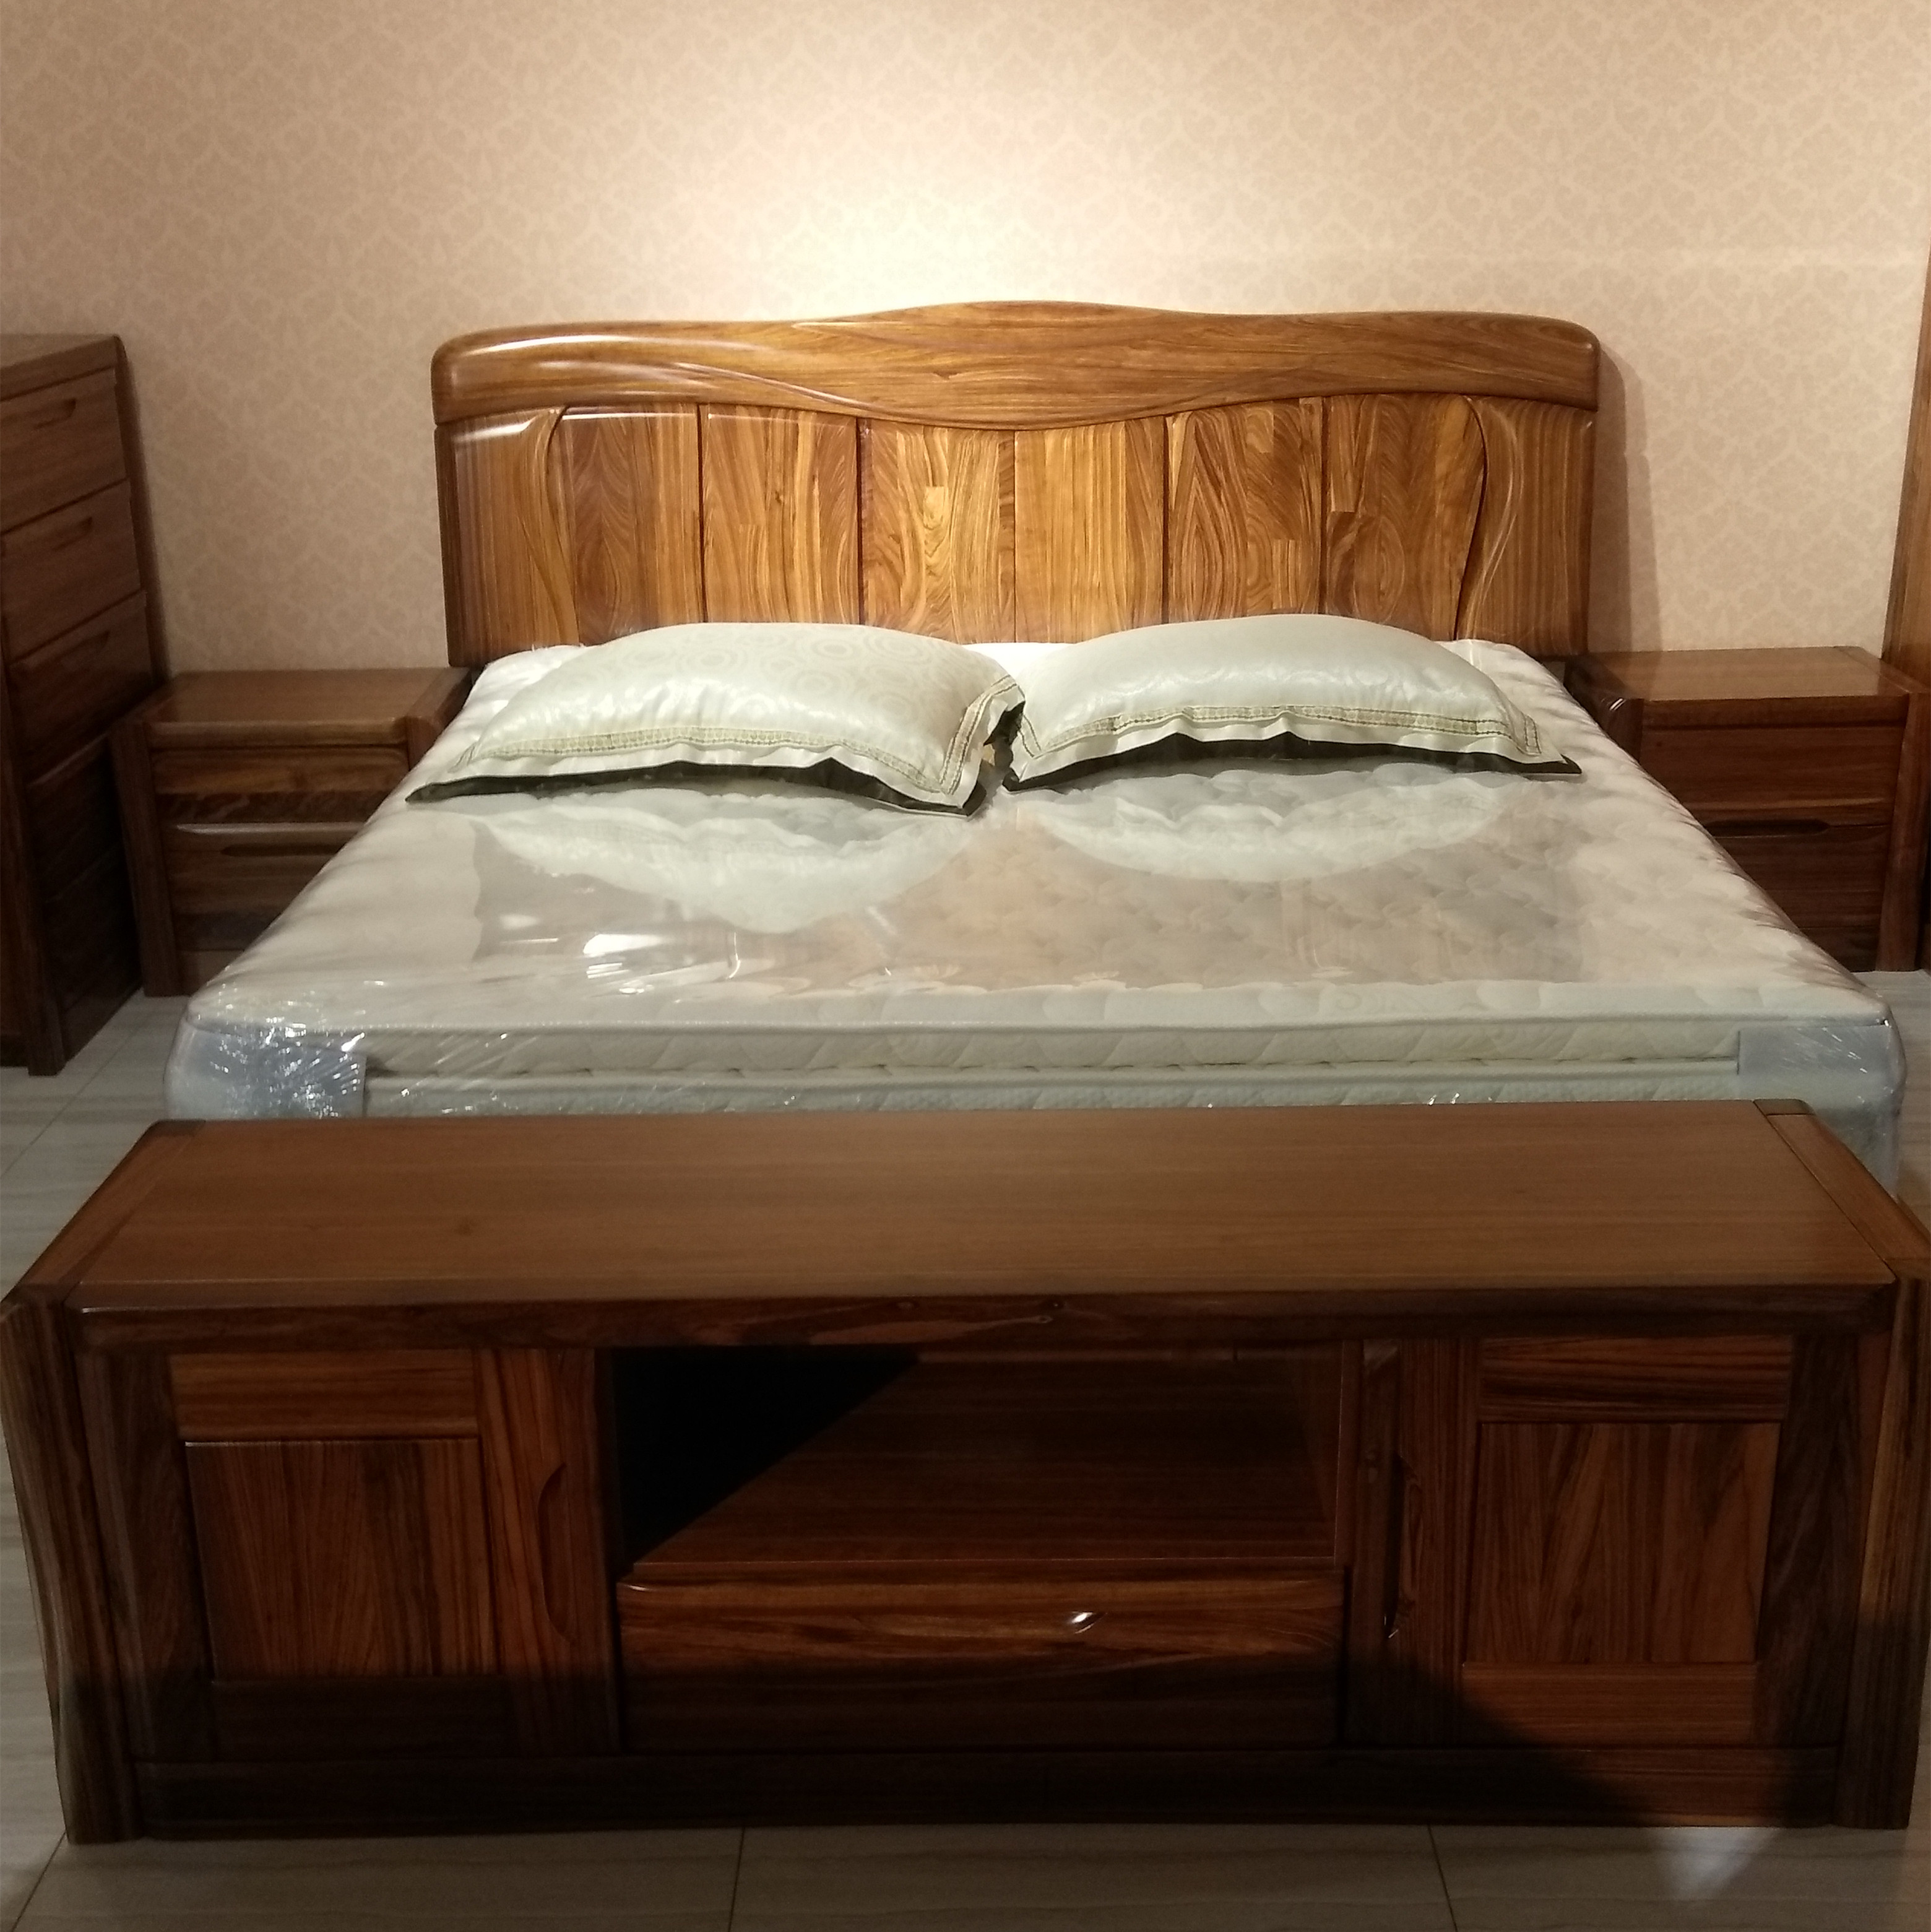 The Nordic Wujin wood bed high-end bedroom double wedding bed all wood furniture, 1.8 meters of walnut bed PK